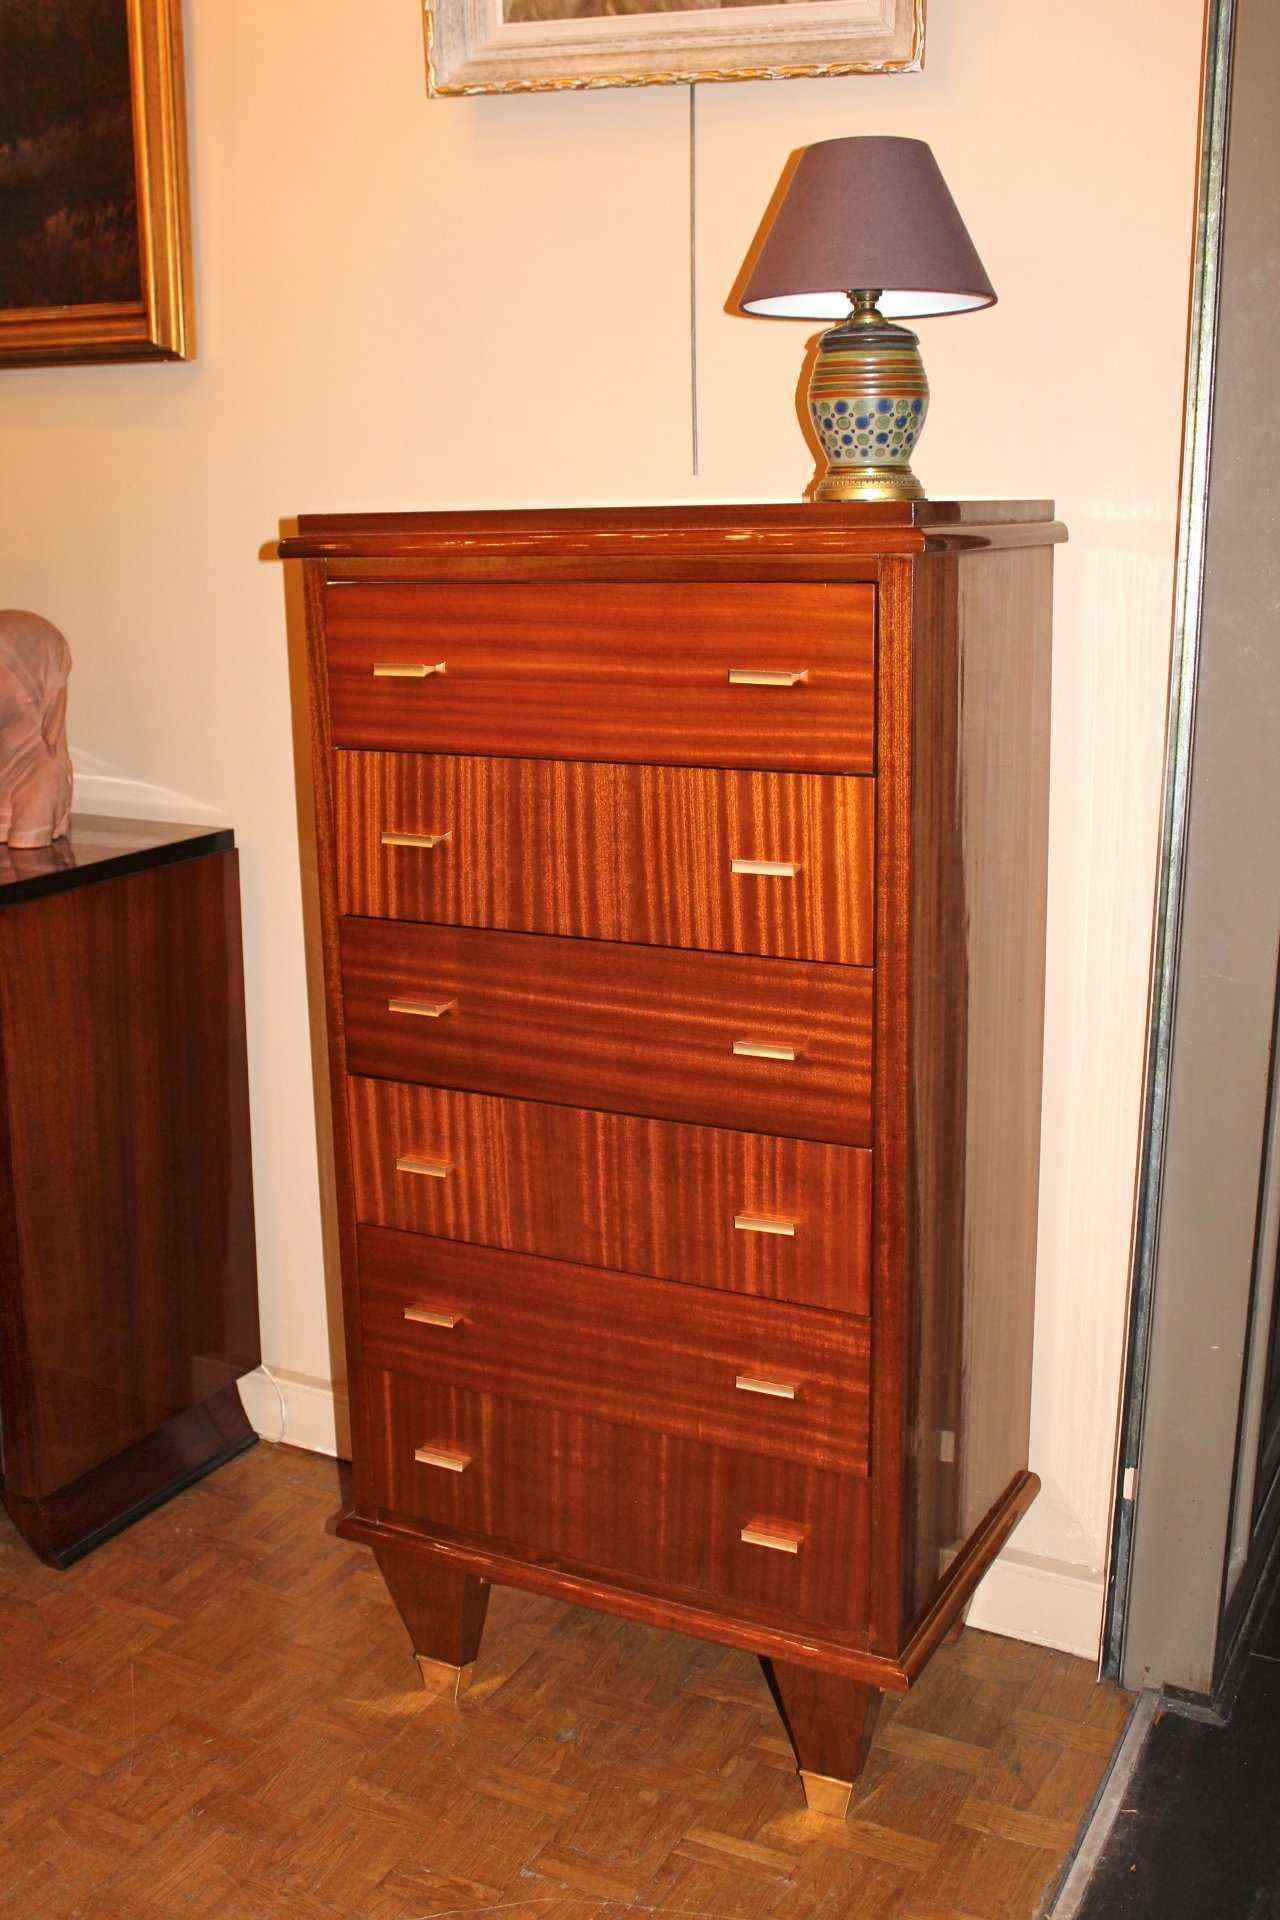 1940 Mahogany Commode